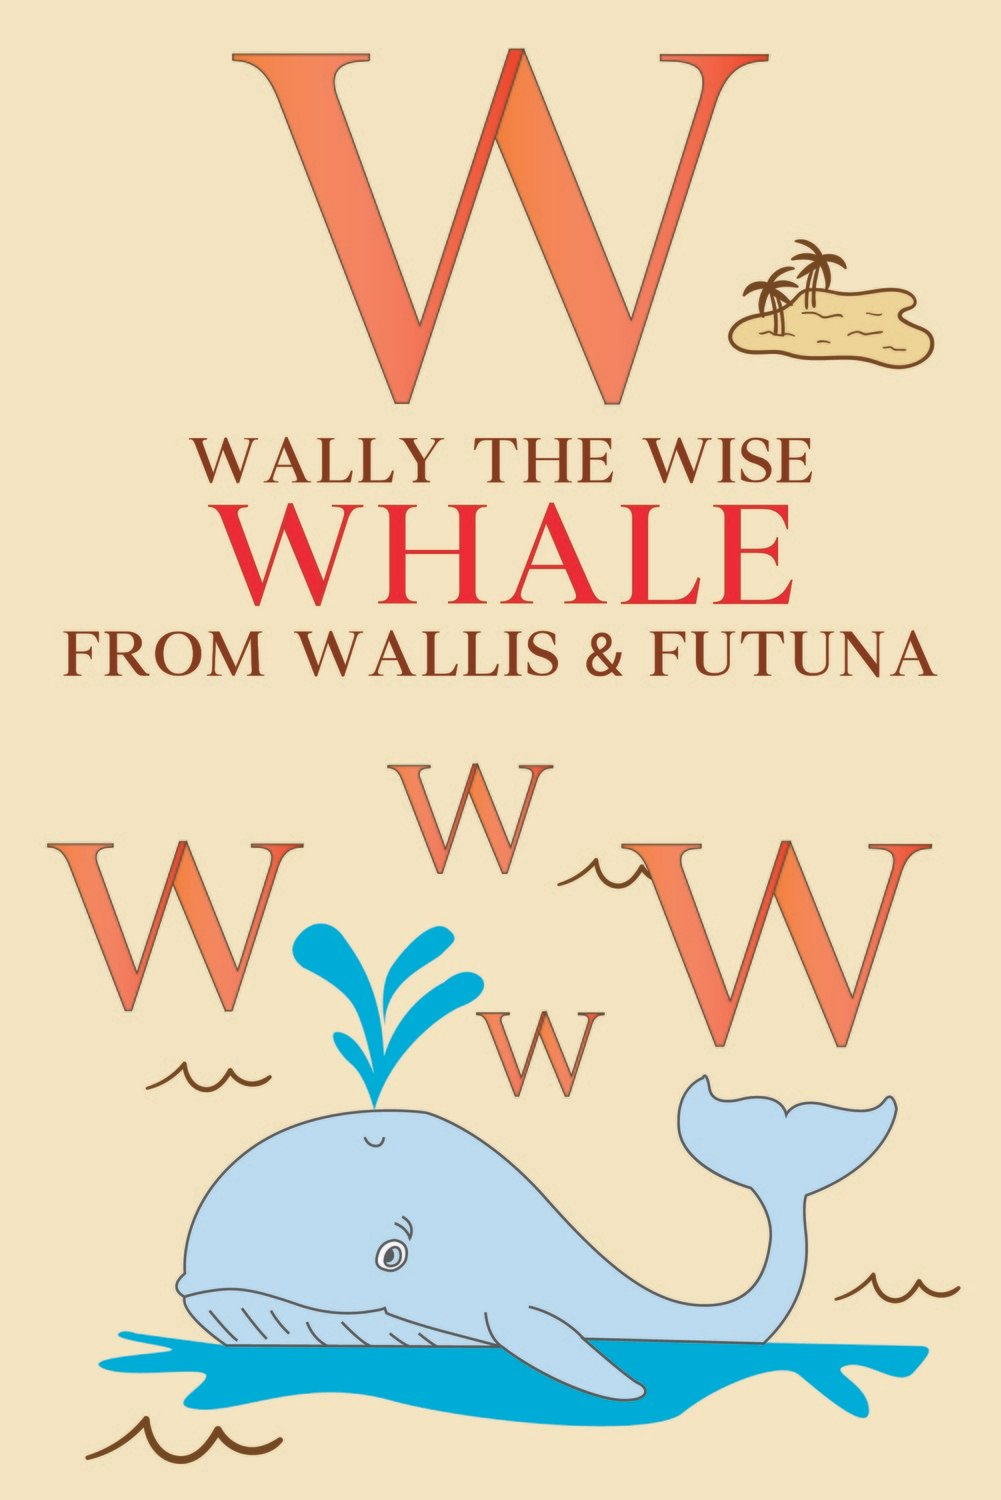 Wally The Wise WHALE From WALLIS & FUTUNA Poster